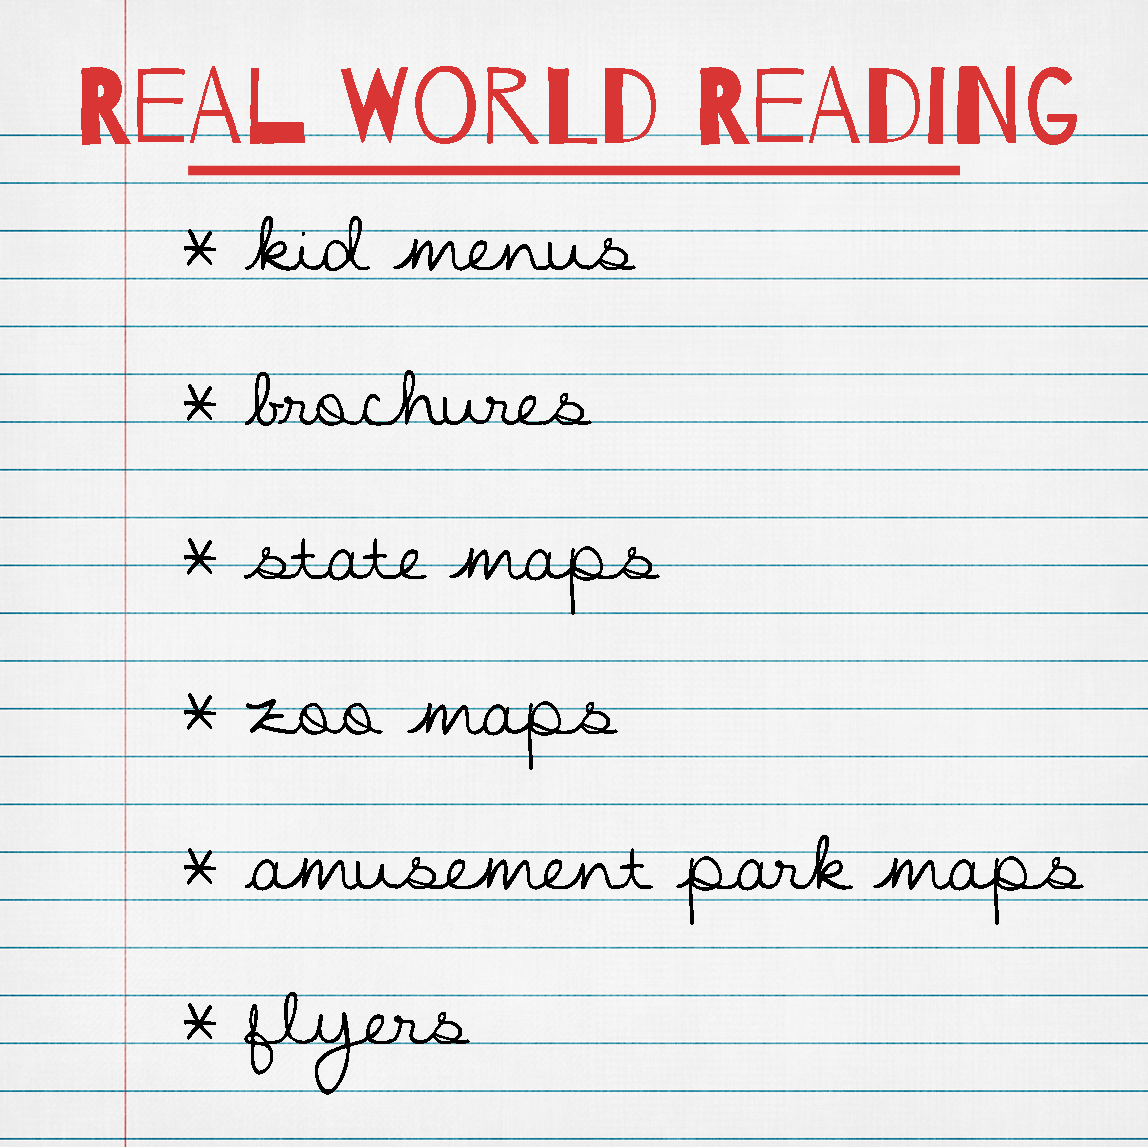 Real World Reading Materials Added To Classroom Library